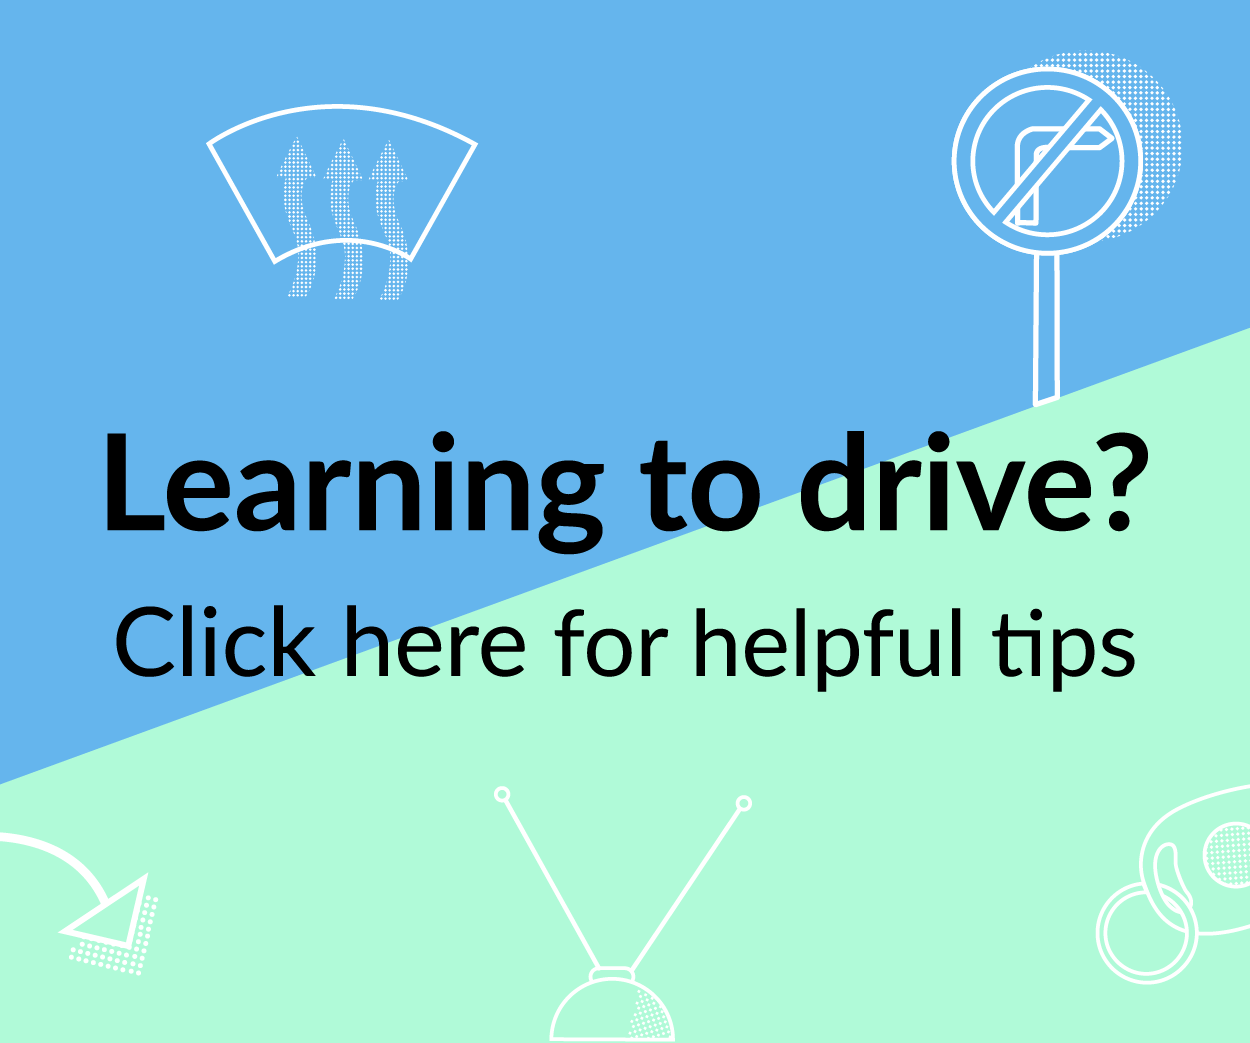 Learner Driver: Helpful tips and advice.